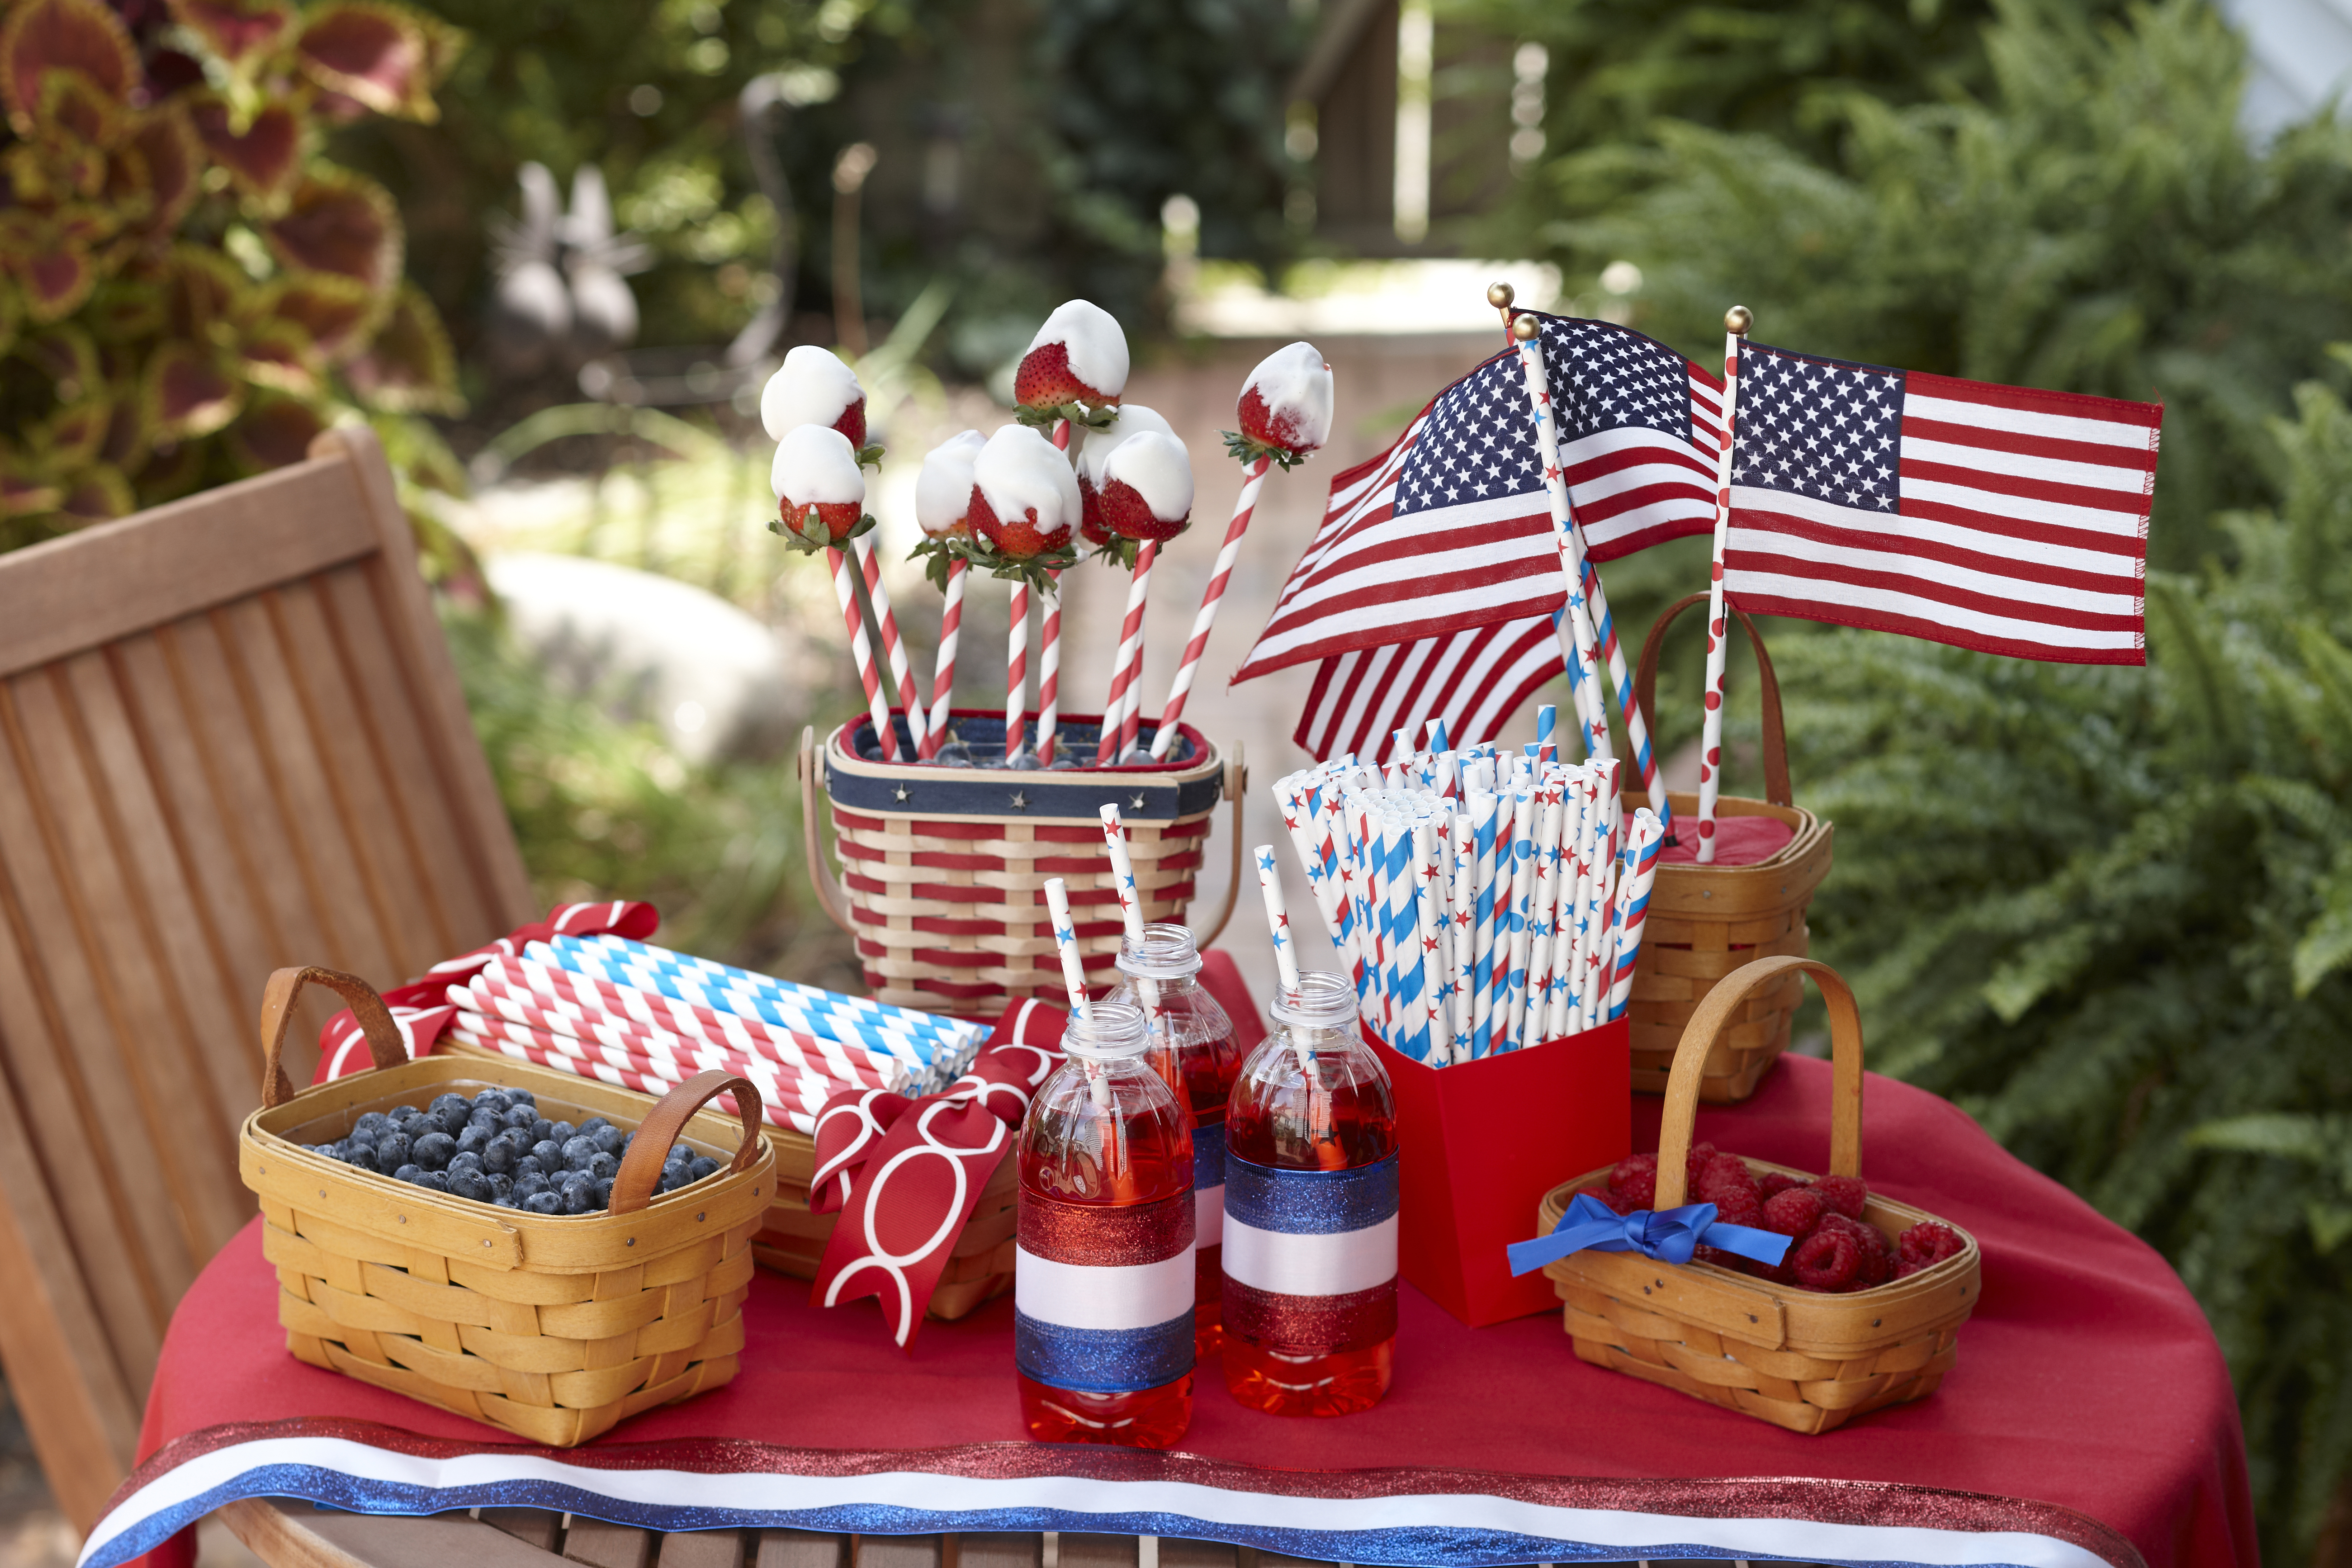 Fourth of July Party Planning - Theresa's Reviews - www.theresasreviews.com - Photo courtesy of Aardvark